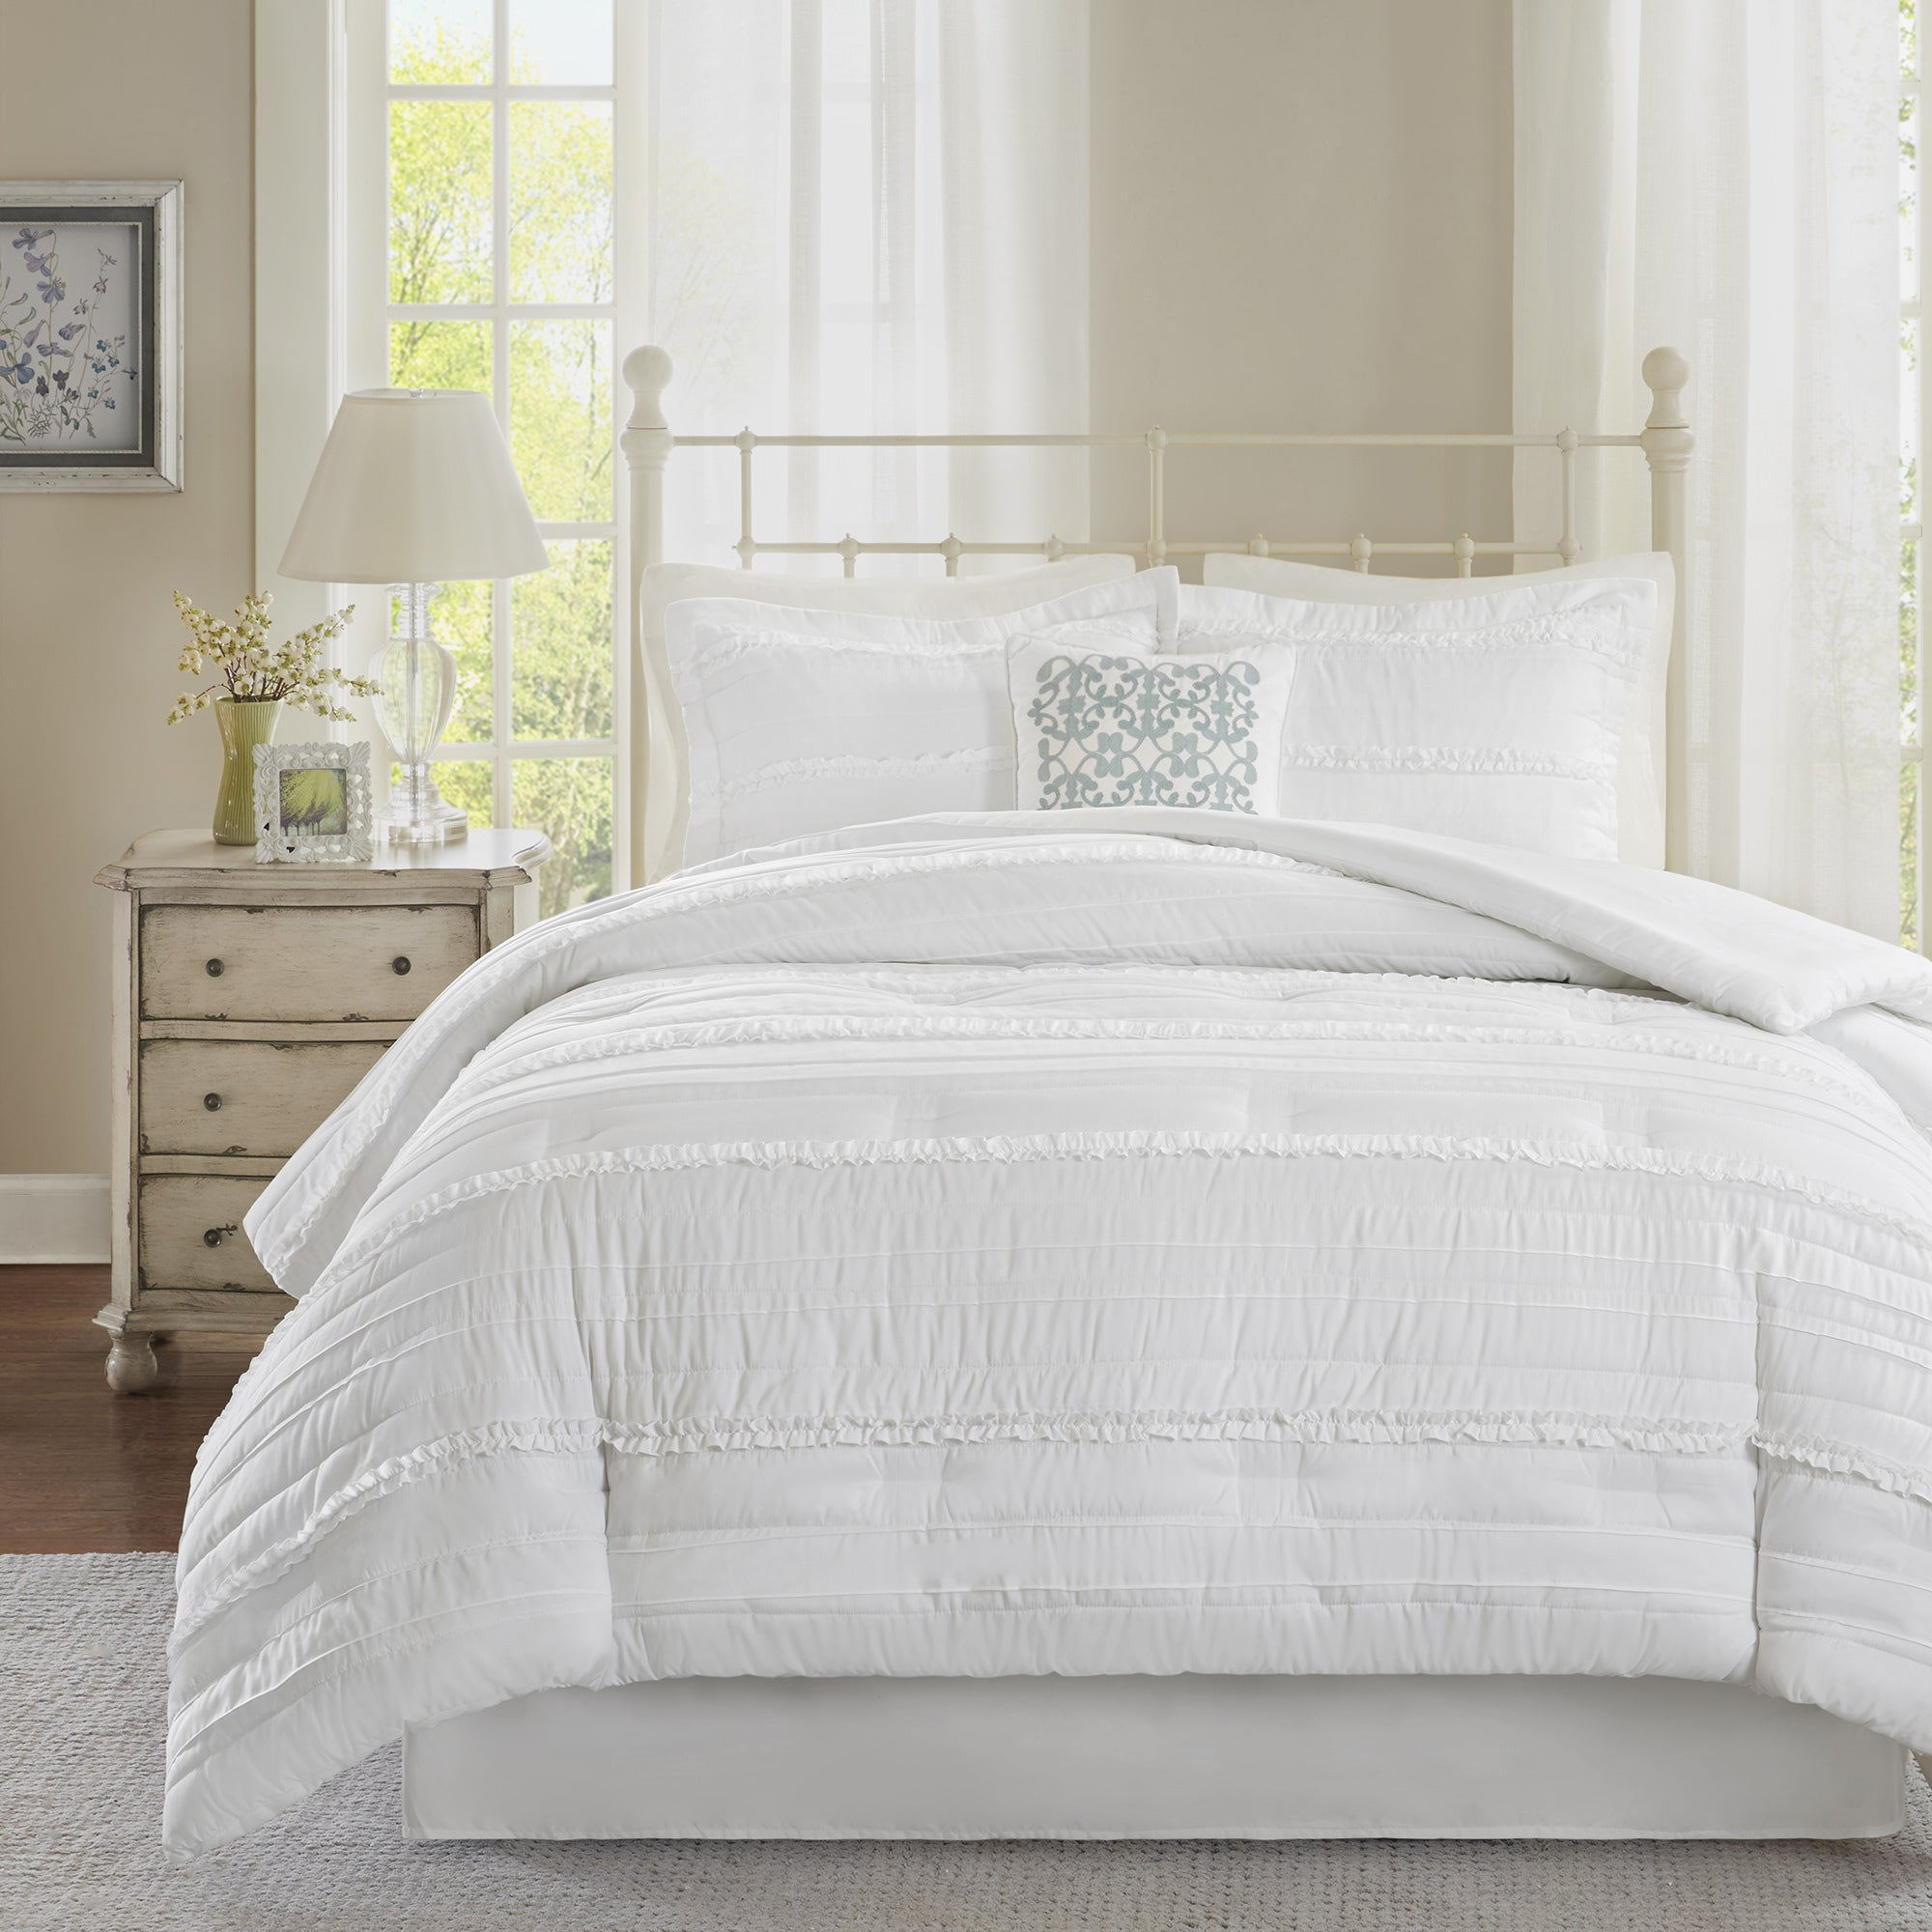 park com free red bedspread bed jacquard madison bedding product overstock piece bath dartmouth set